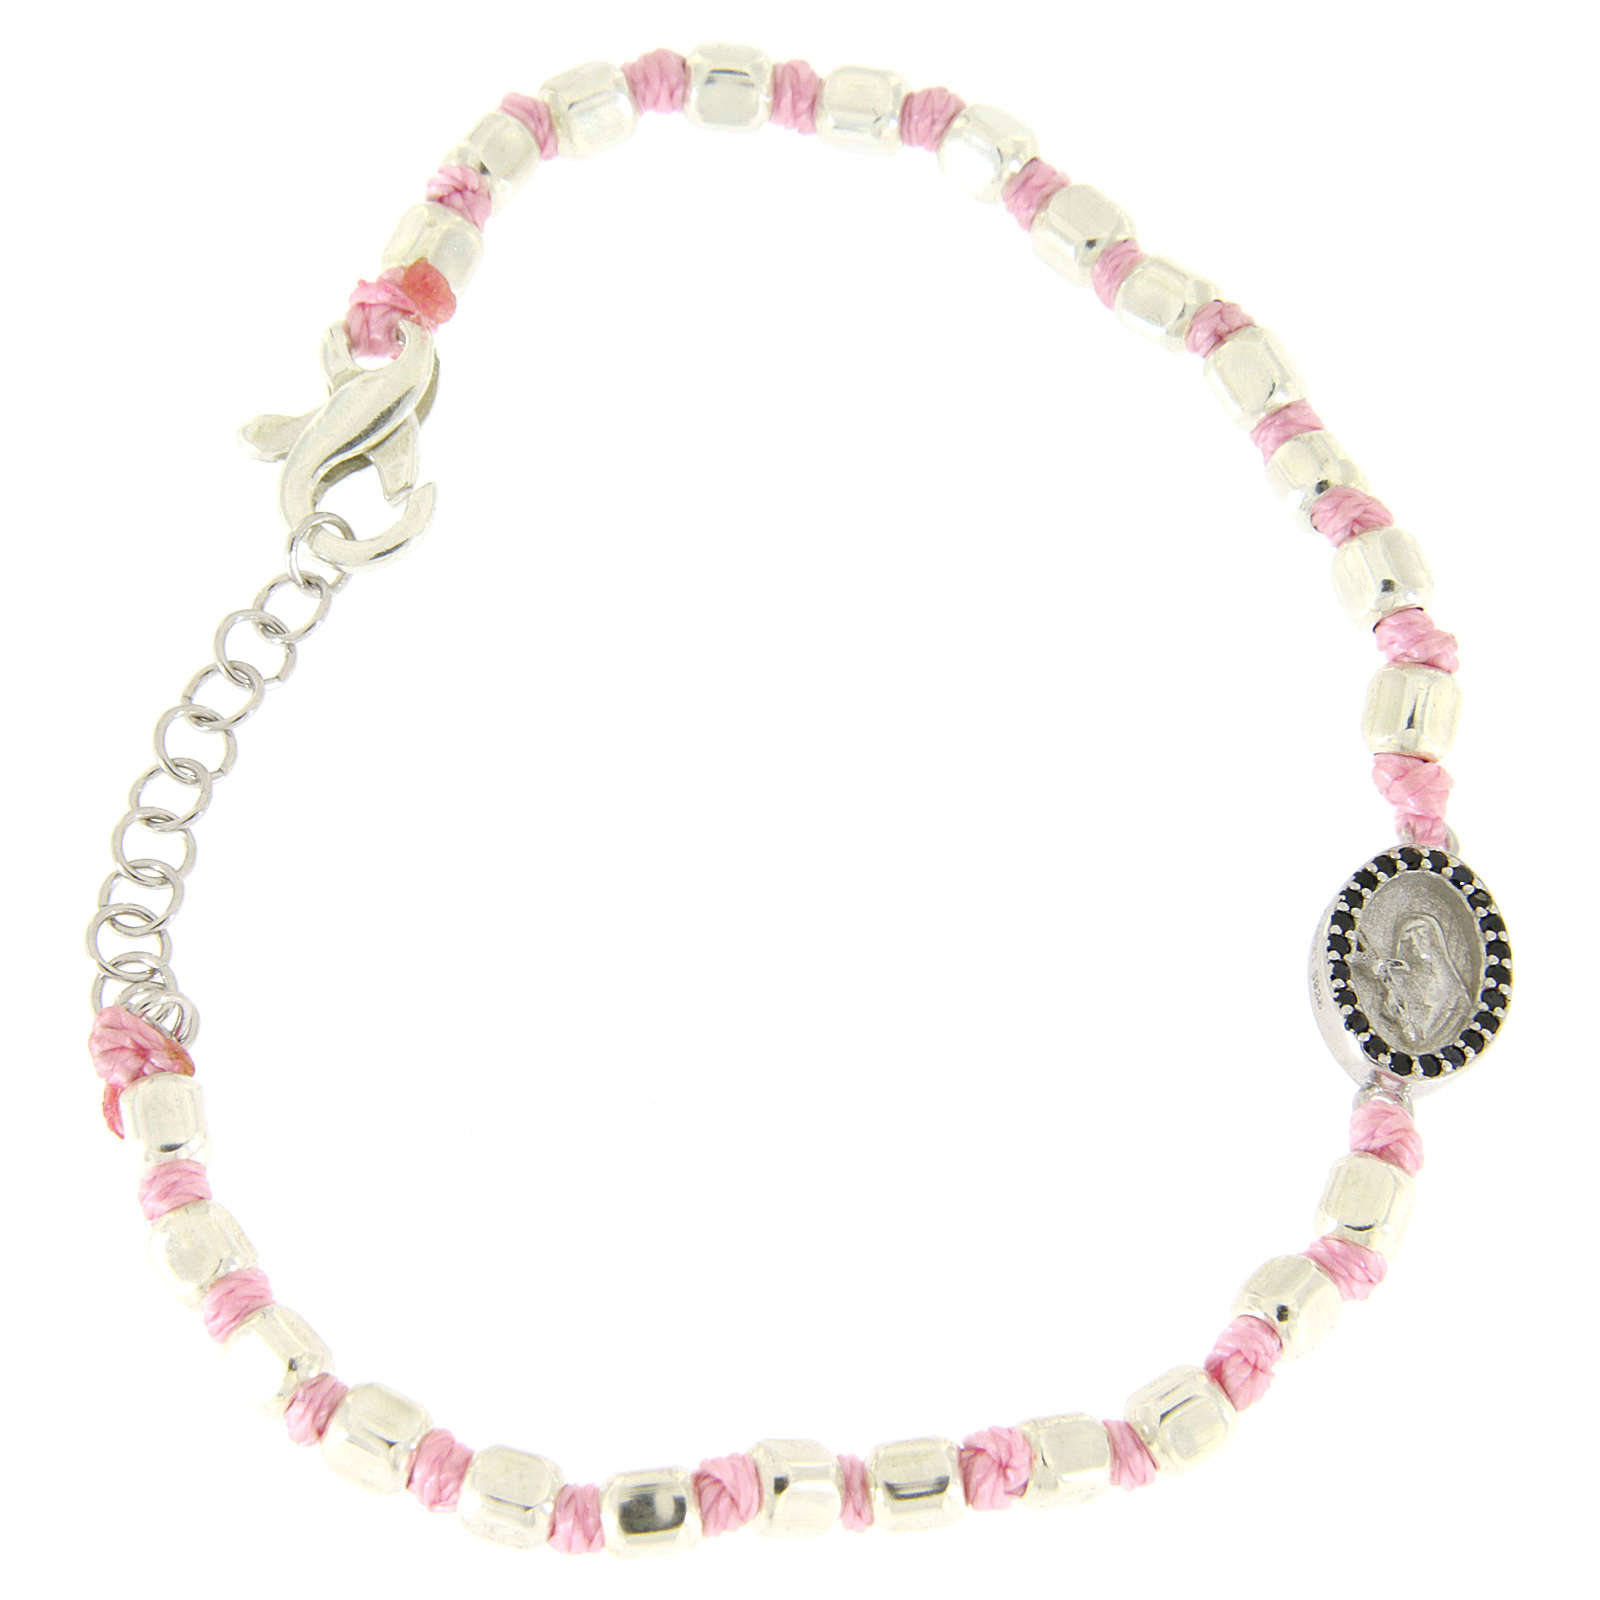 Bracelet with multifaceted silver beads 2 mm, pink cotton cord and Saint Rita medal with black zircons 4